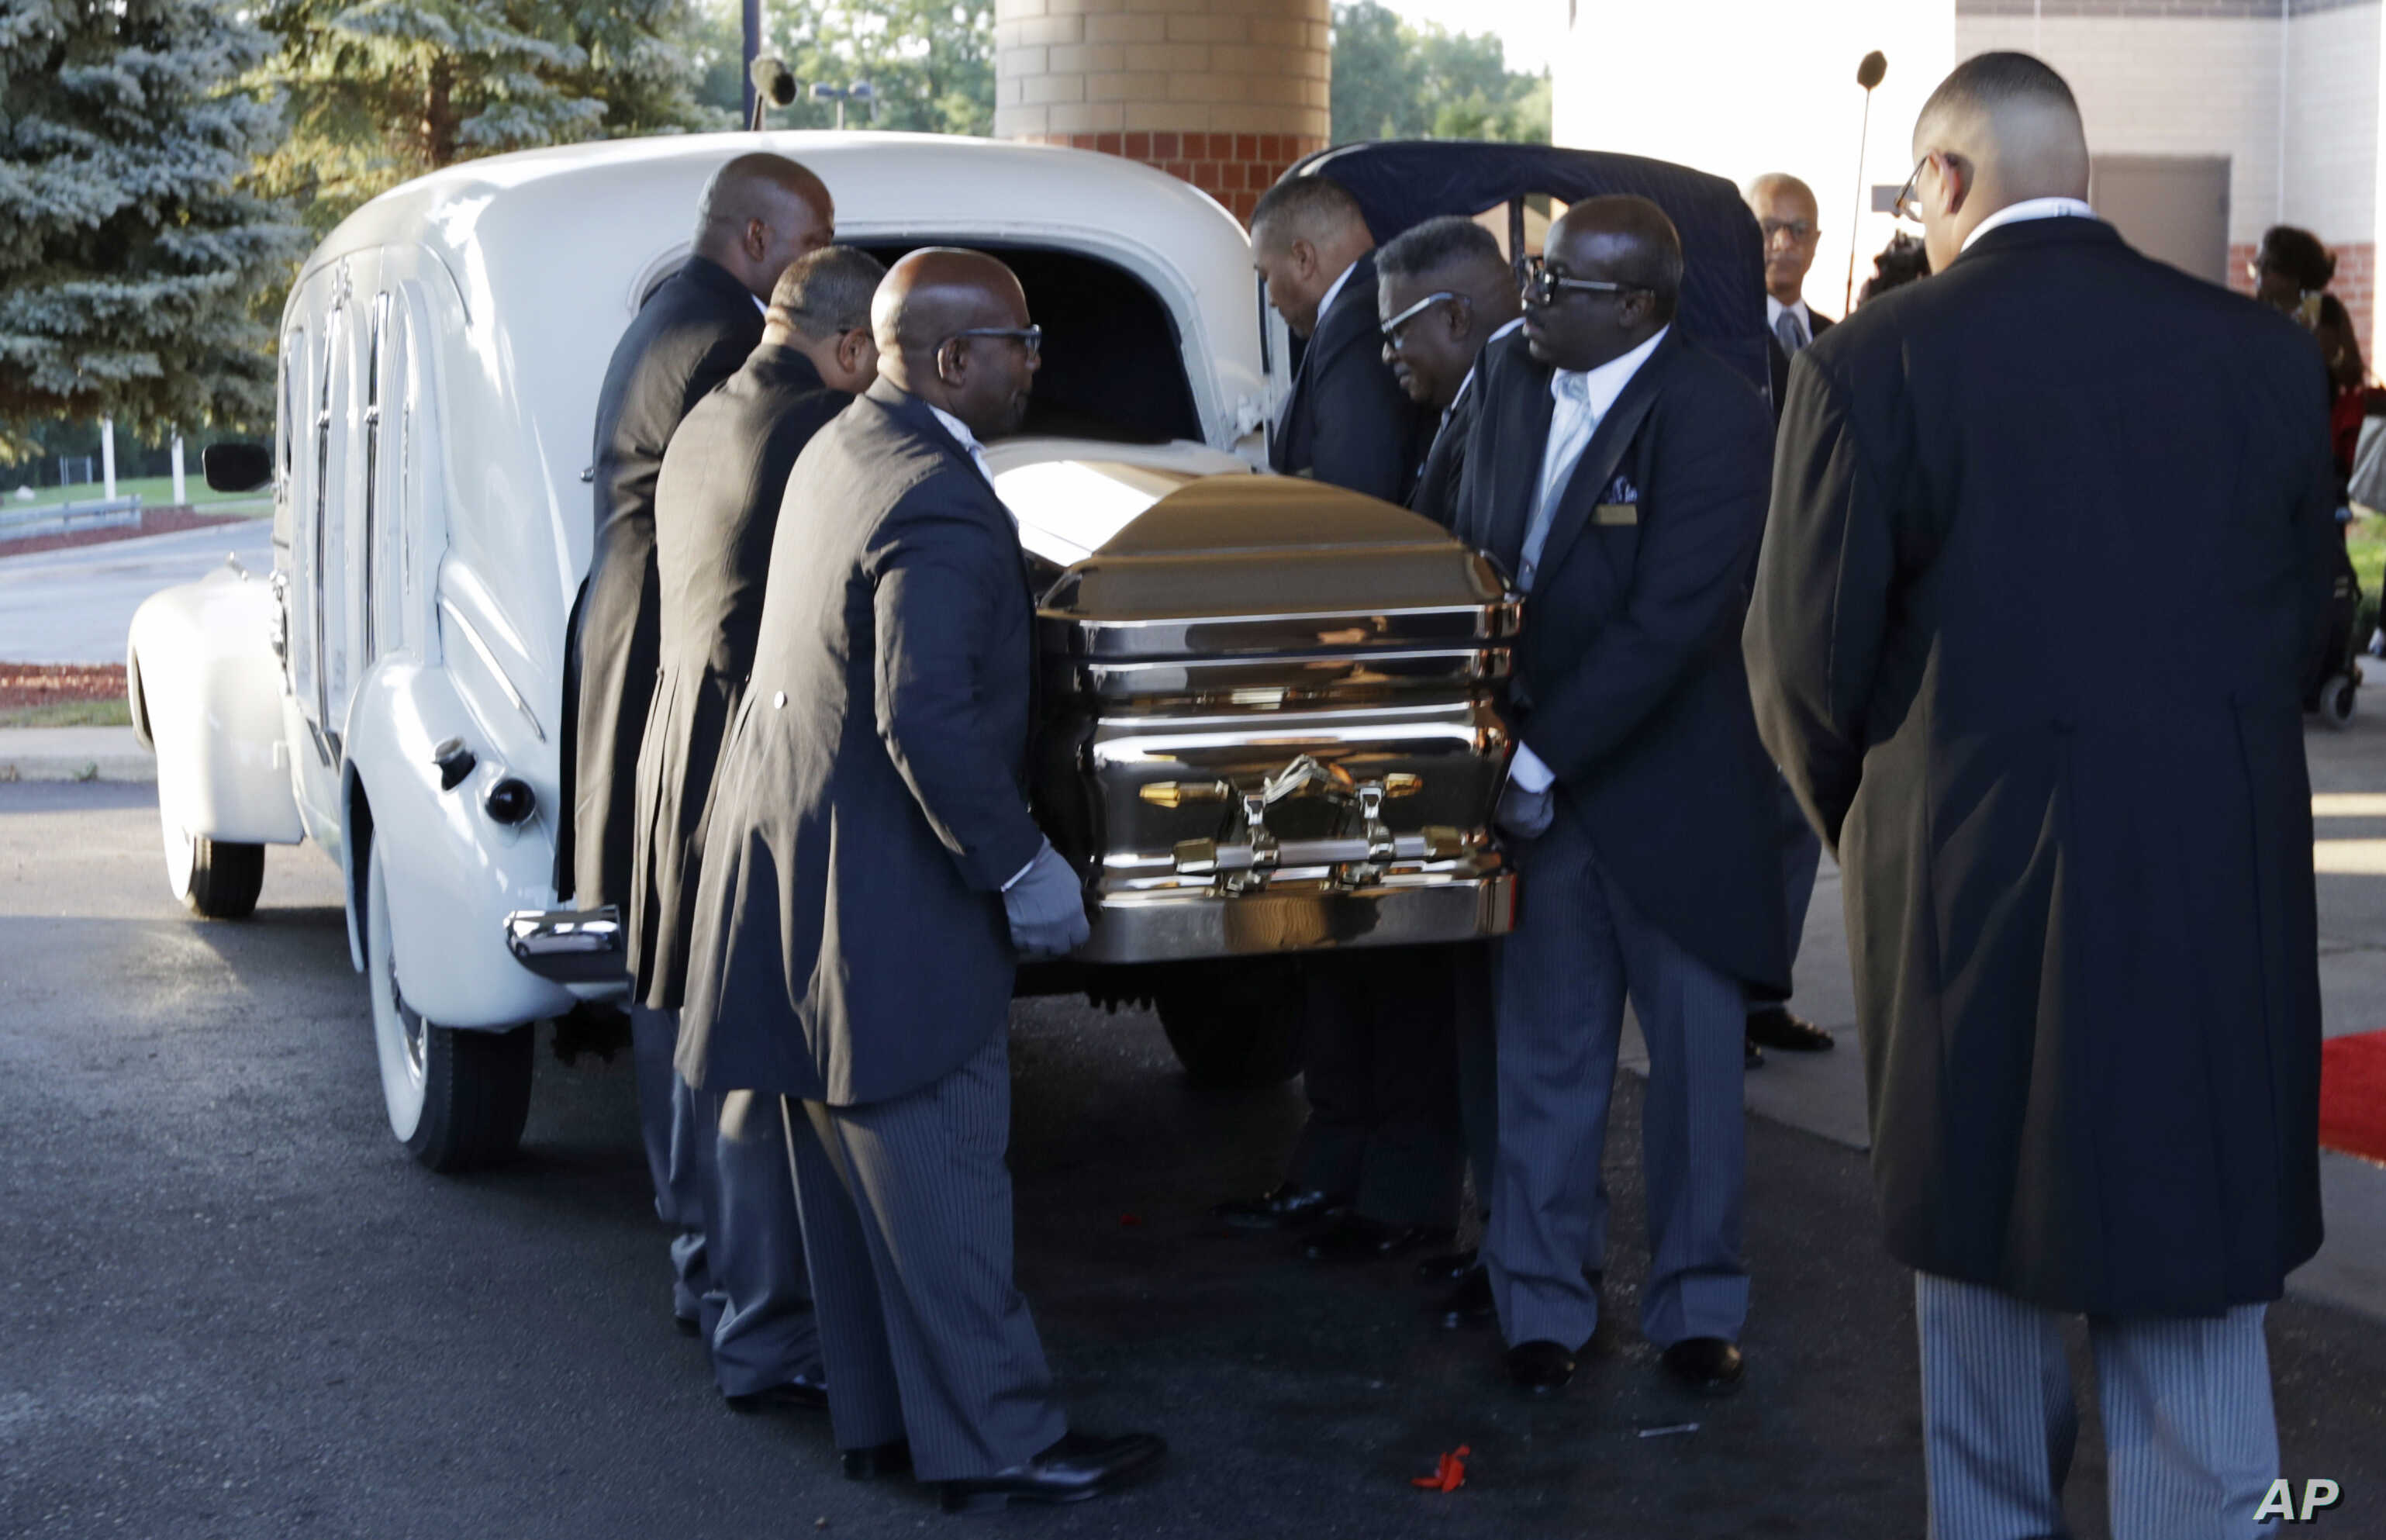 Pallbearers carry the gold casket of legendary singer Aretha Franklin after arriving at the Greater Grace Temple in Detroit, Aug. 31, 2018.